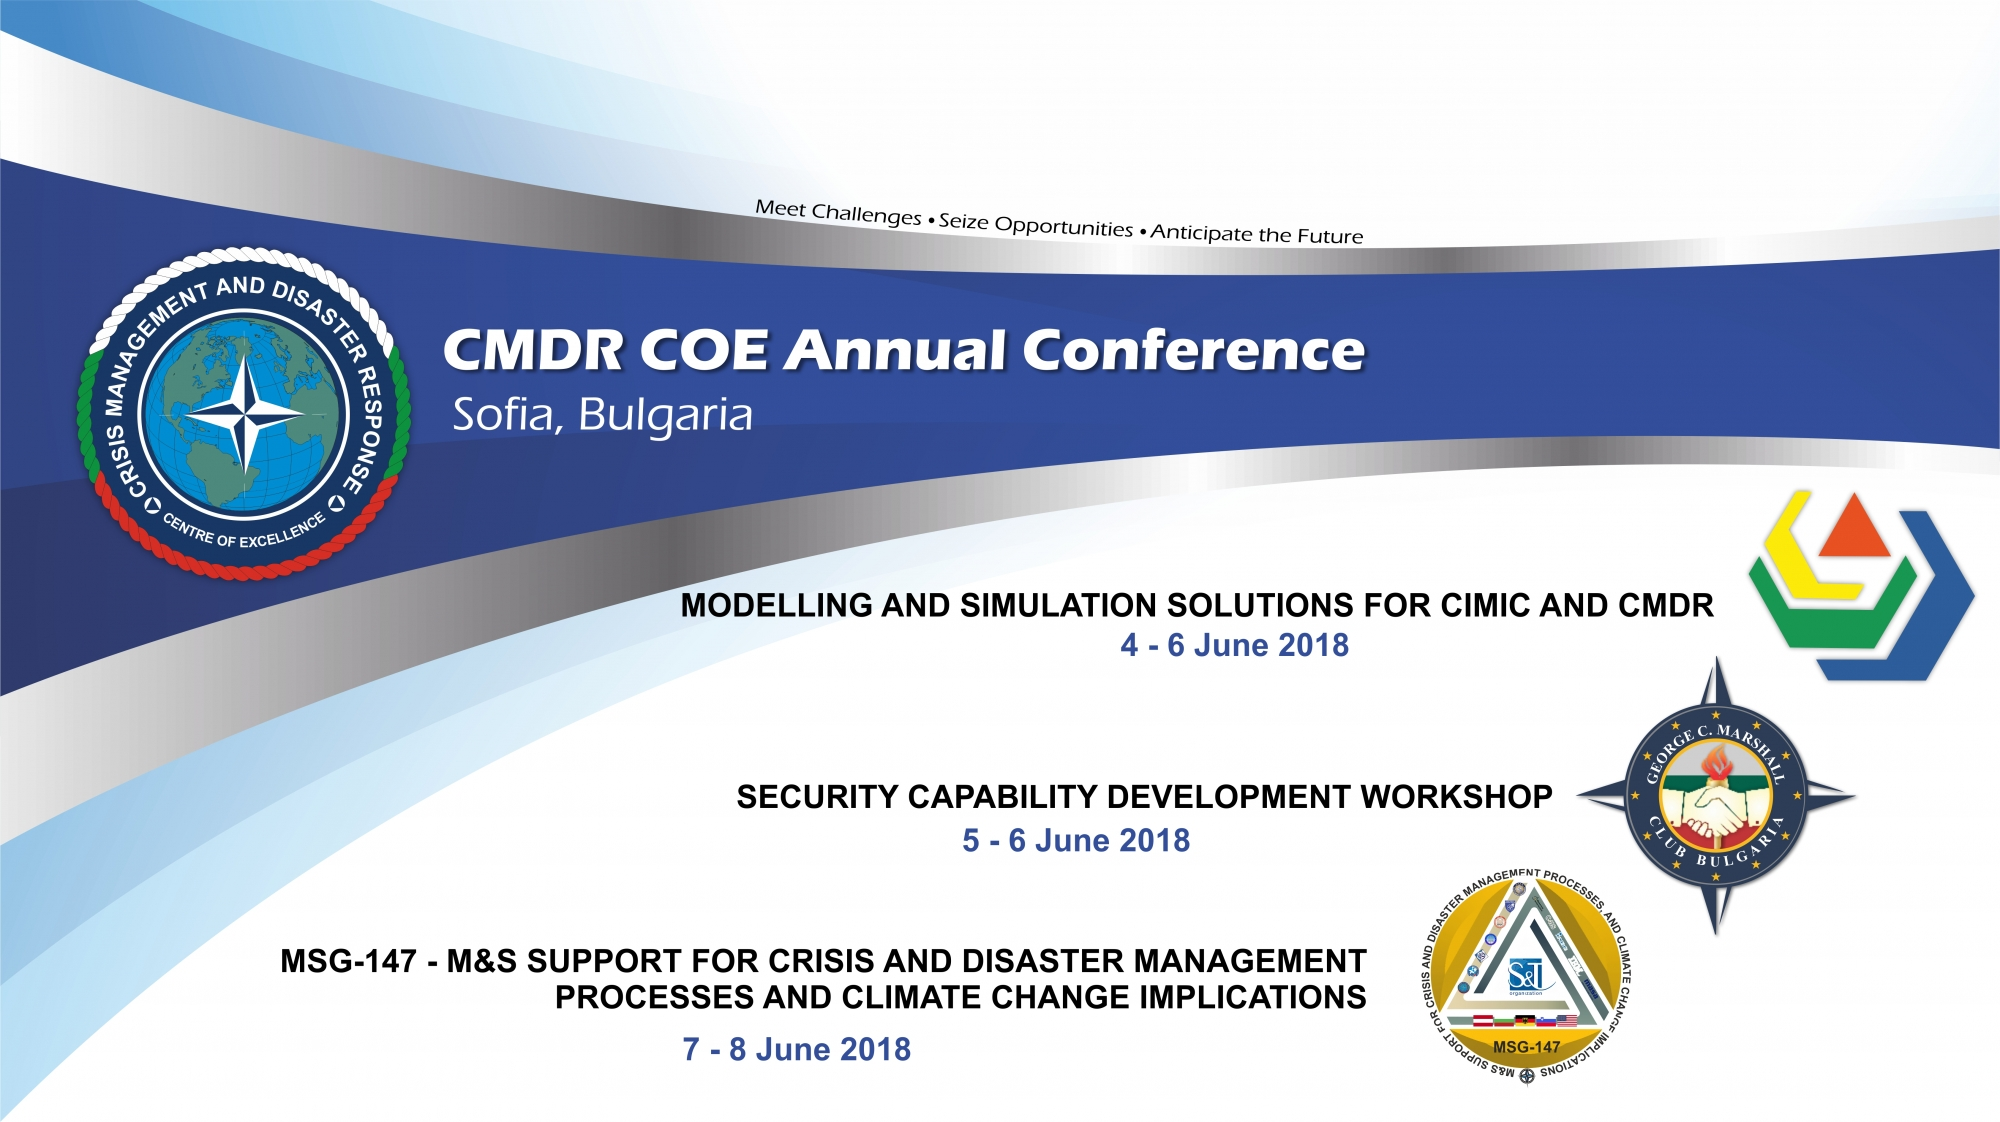 CMDR COE to Hold 6th Annual Conference